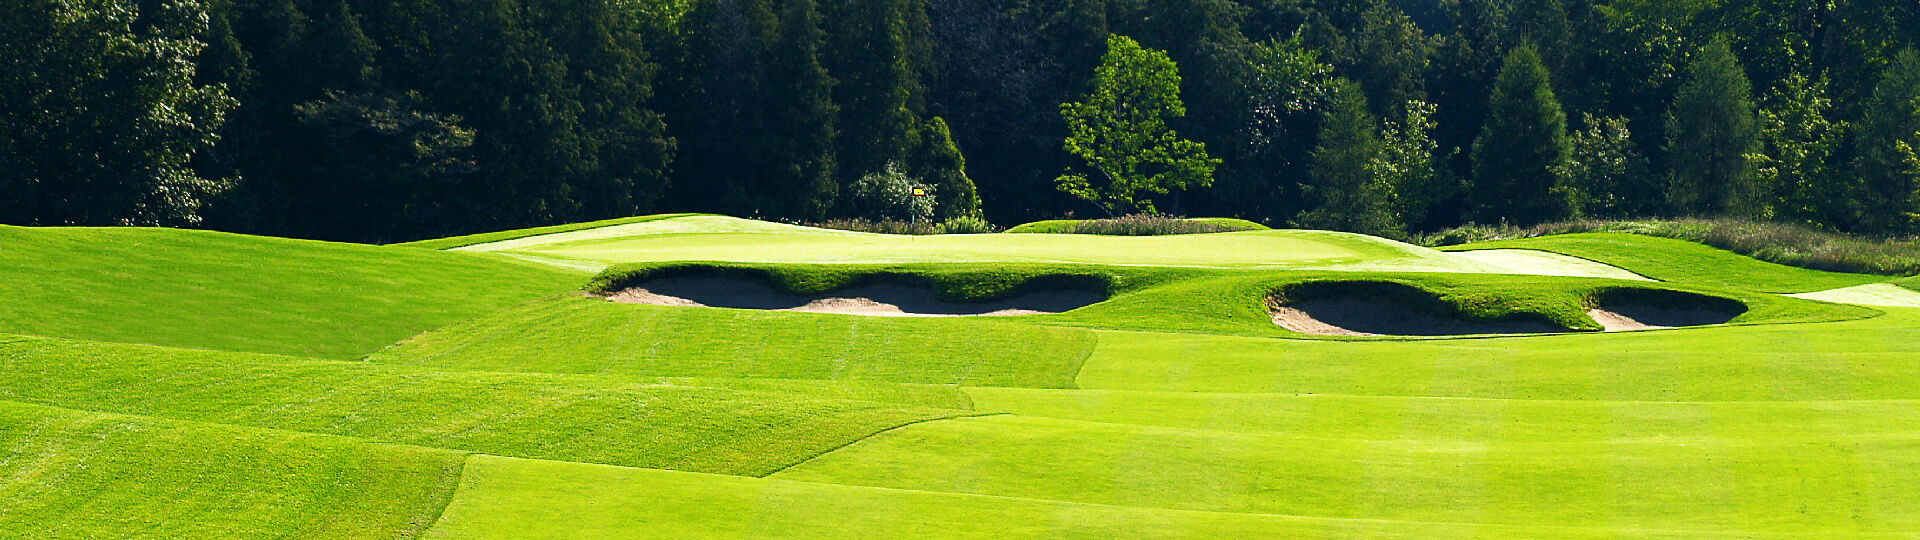 Angus glen golf club cover picture